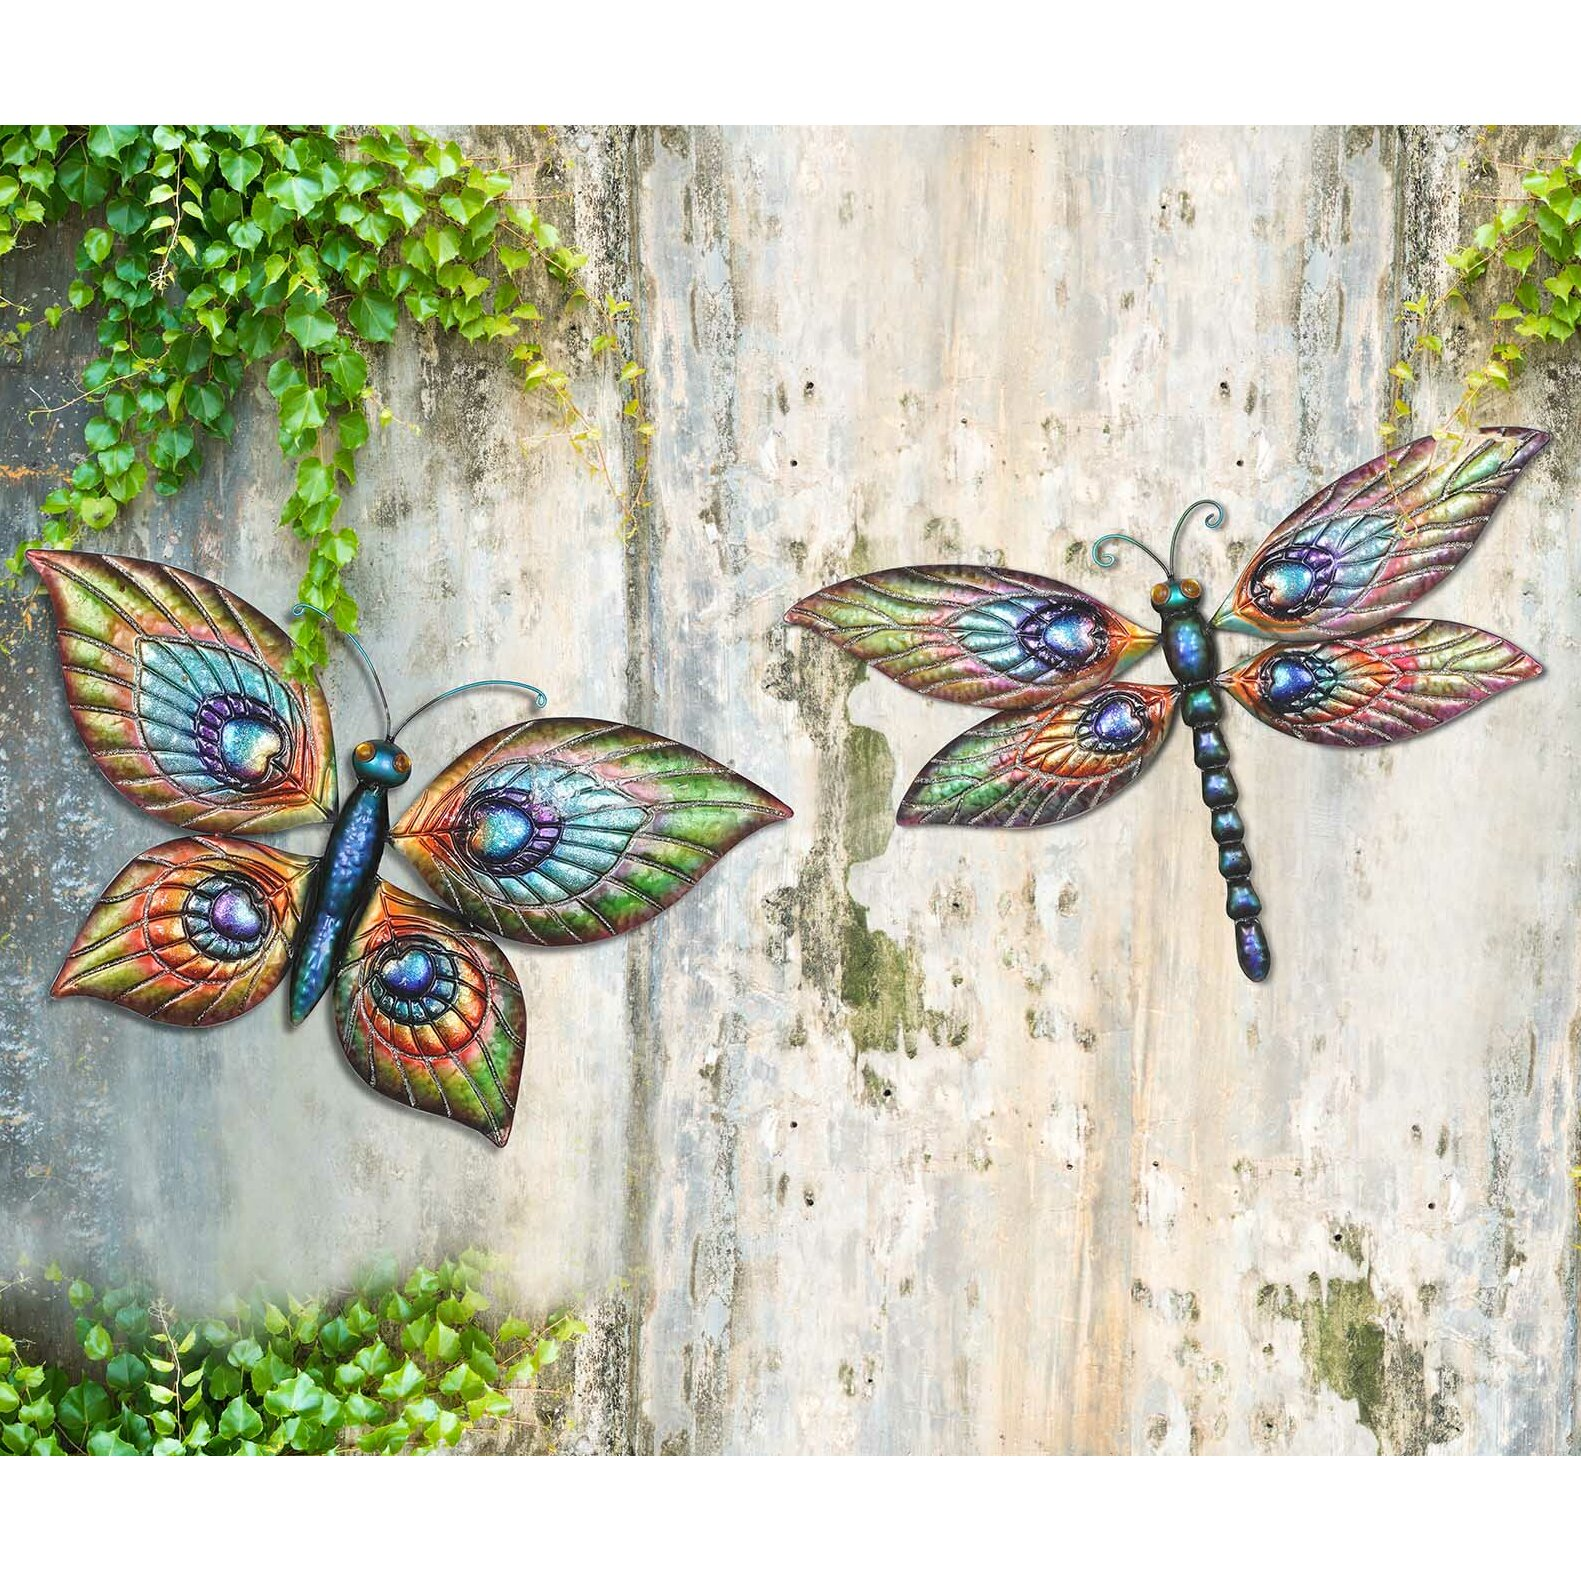 Sunjoy 2 piece butterfly and dragonfly outdoor wall decor for Dragonfly mural